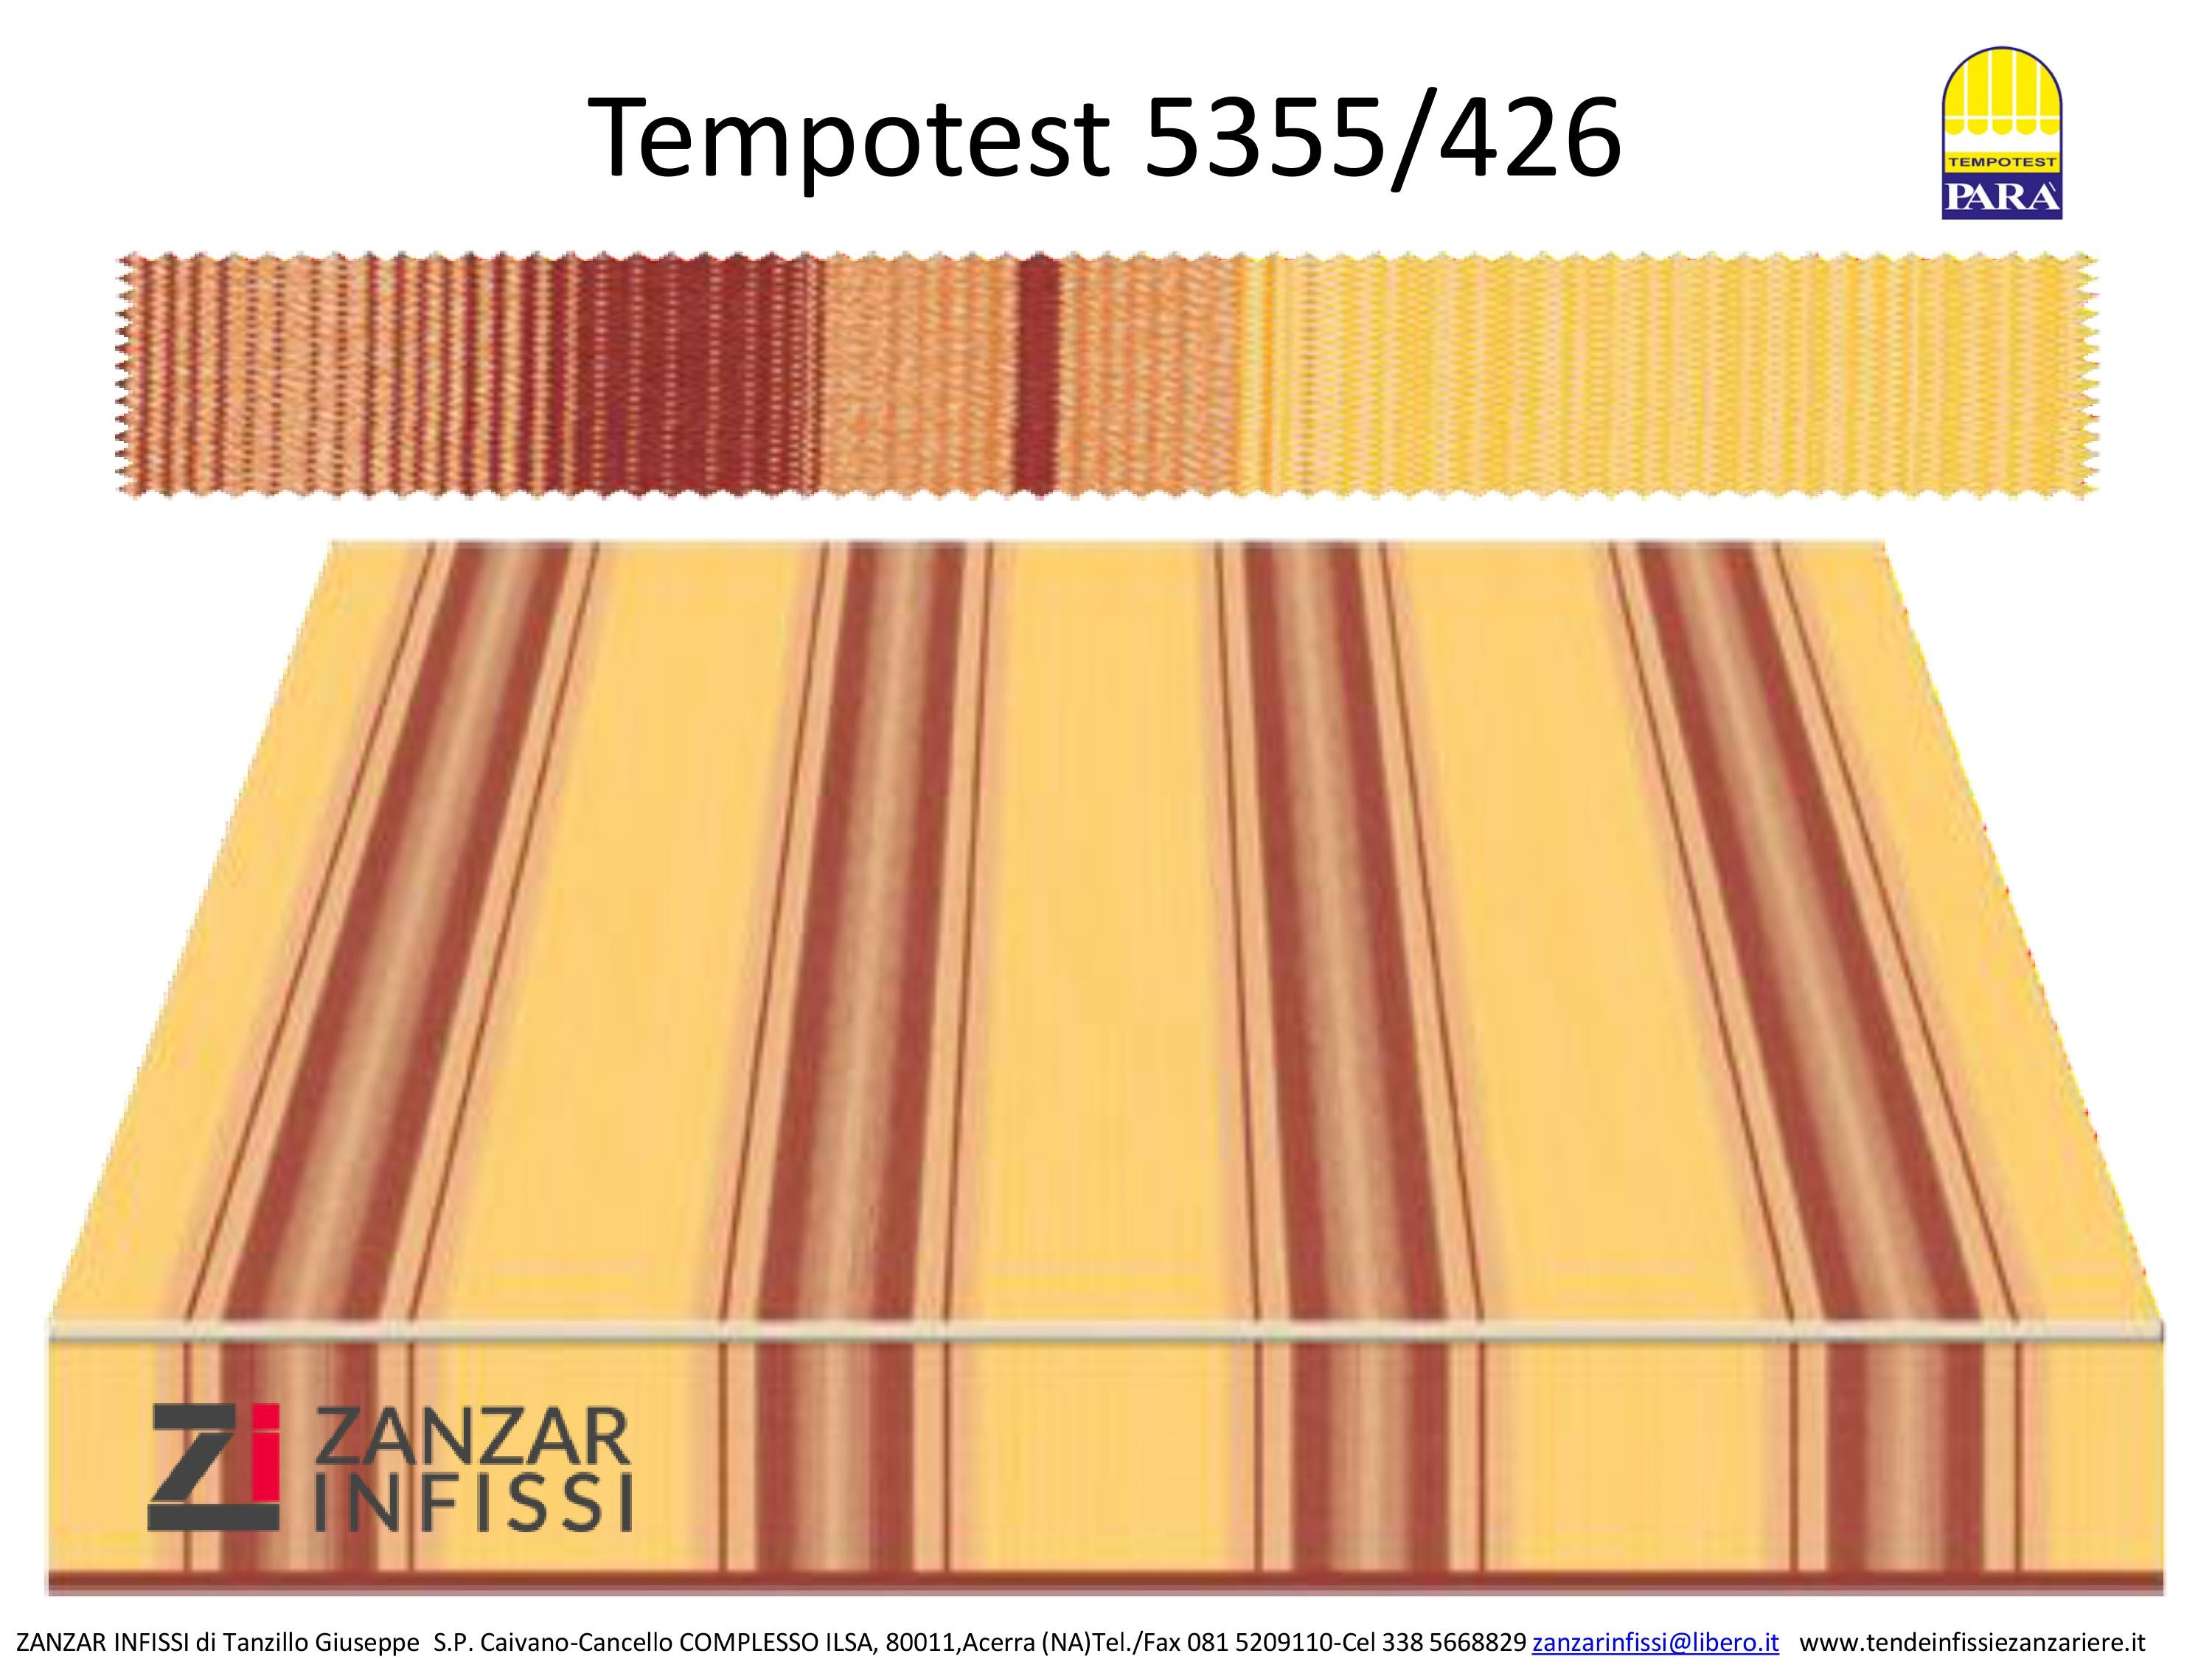 Tempotest 5355/426